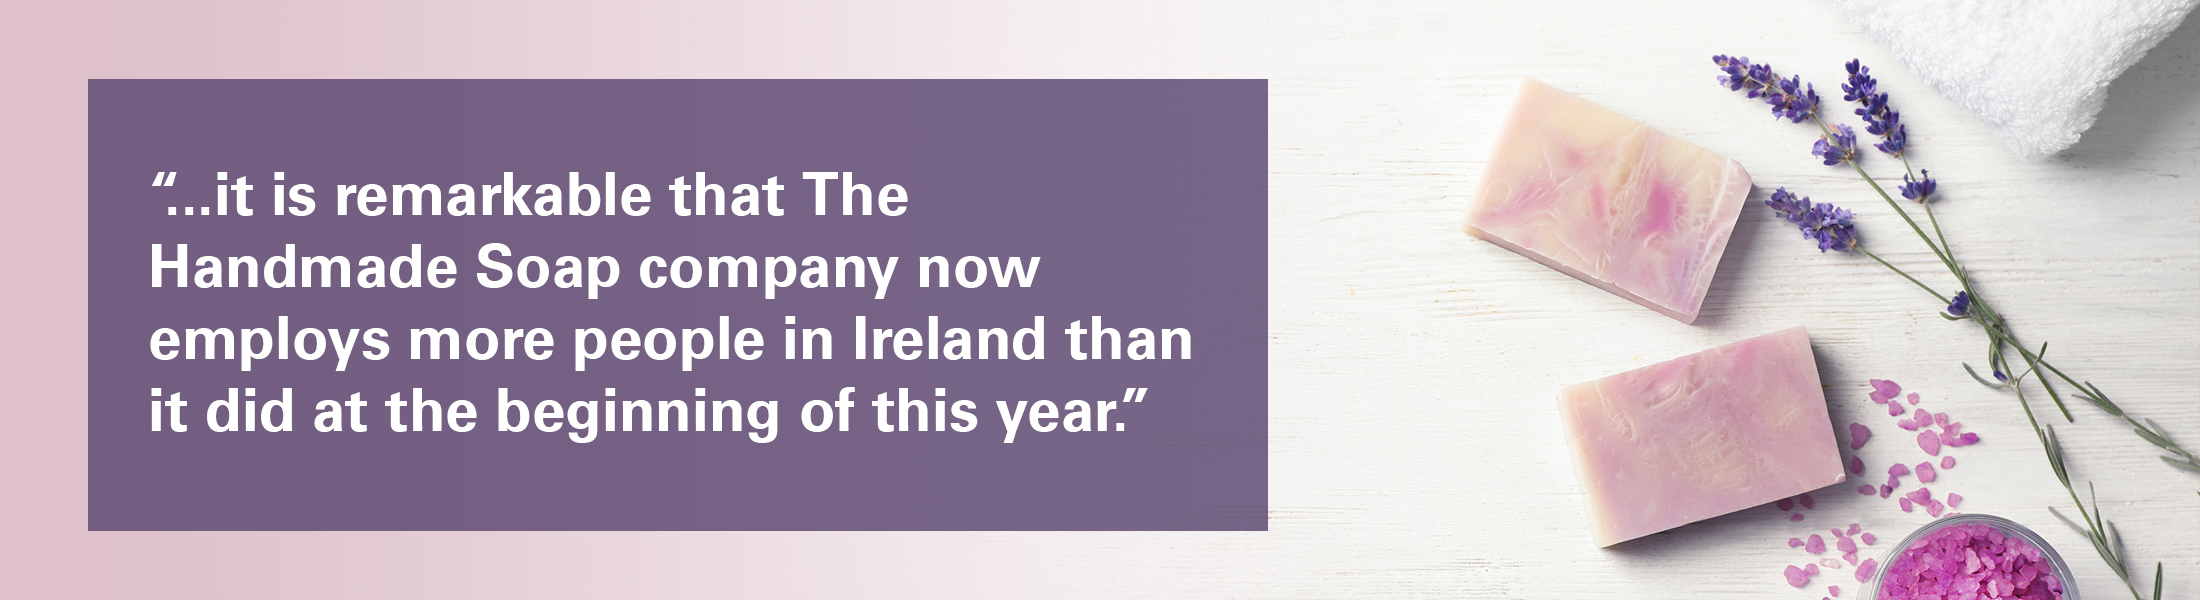 """Handmade soap and lavender overlaid with the text """"SMEs are the backbone of our economy and it is remarkable that The Handmade Soap company now employs more people in Ireland than it did at the beginning of this year."""""""